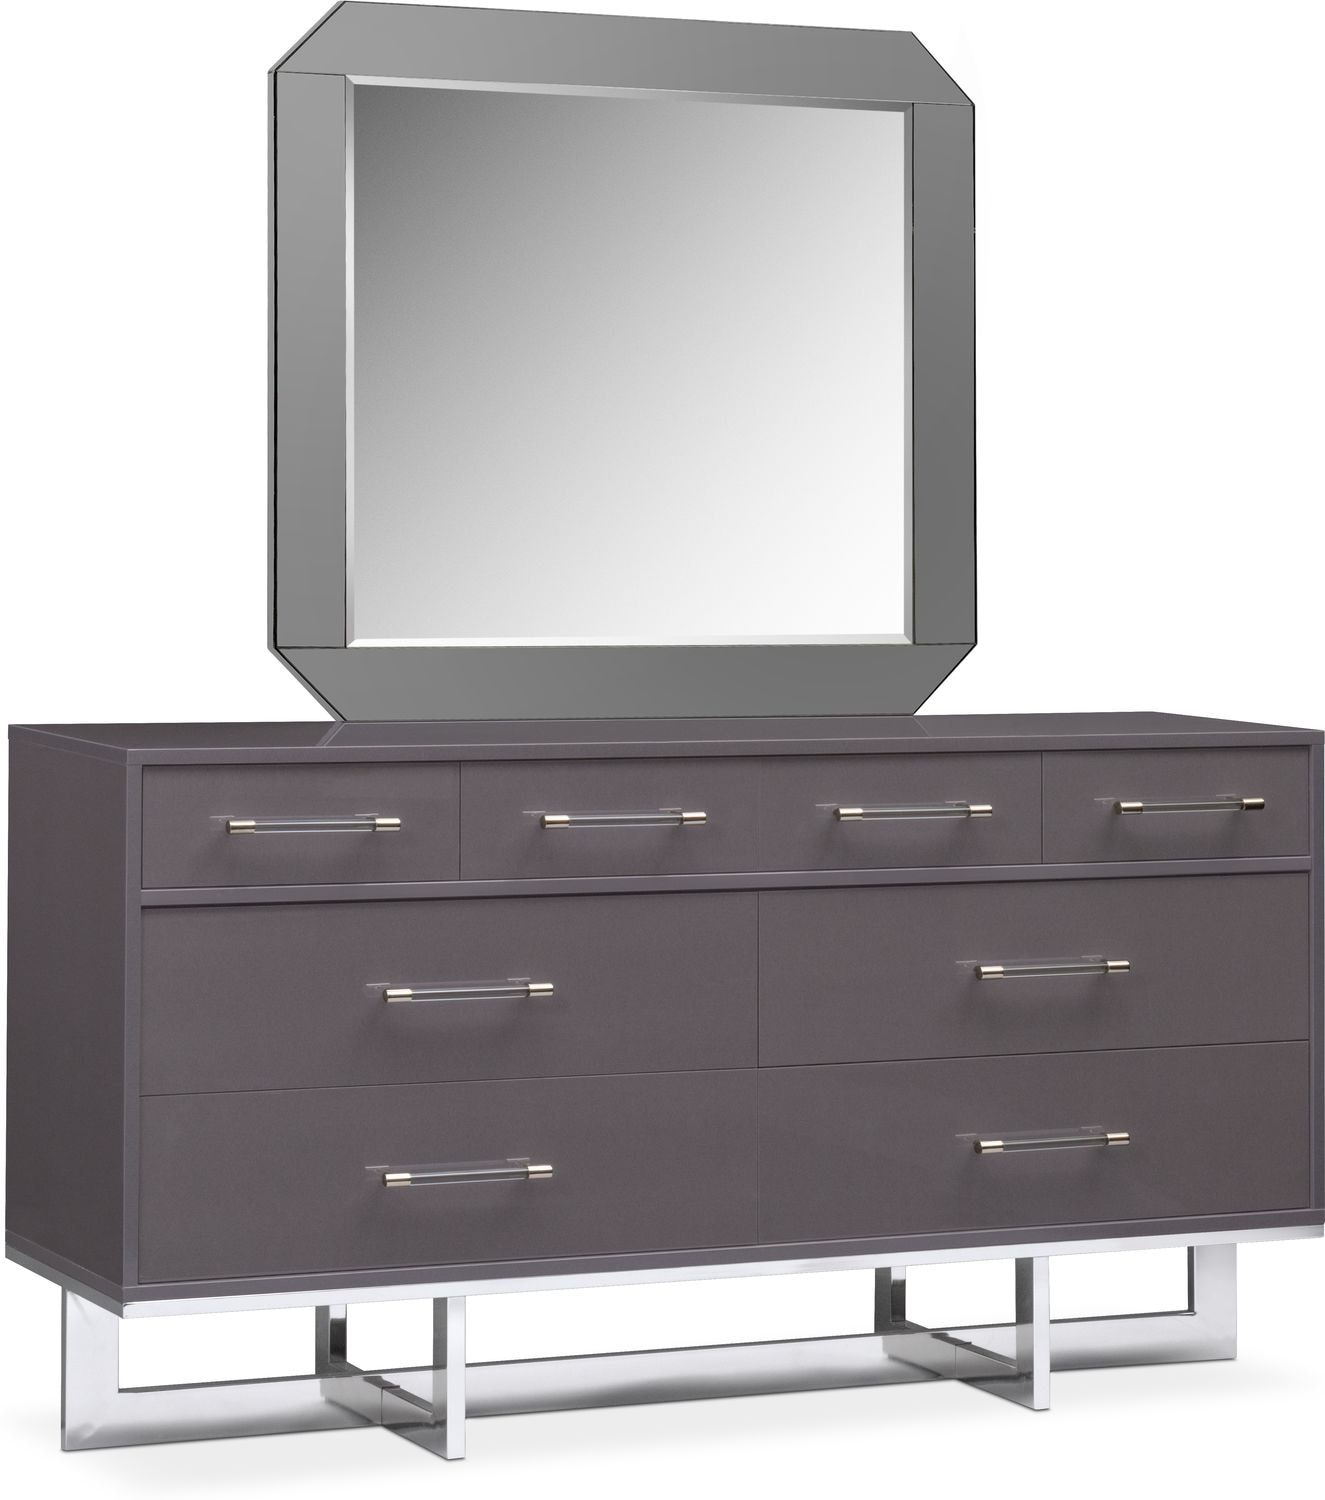 Bedroom Furniture - Concerto Dresser and Mirror